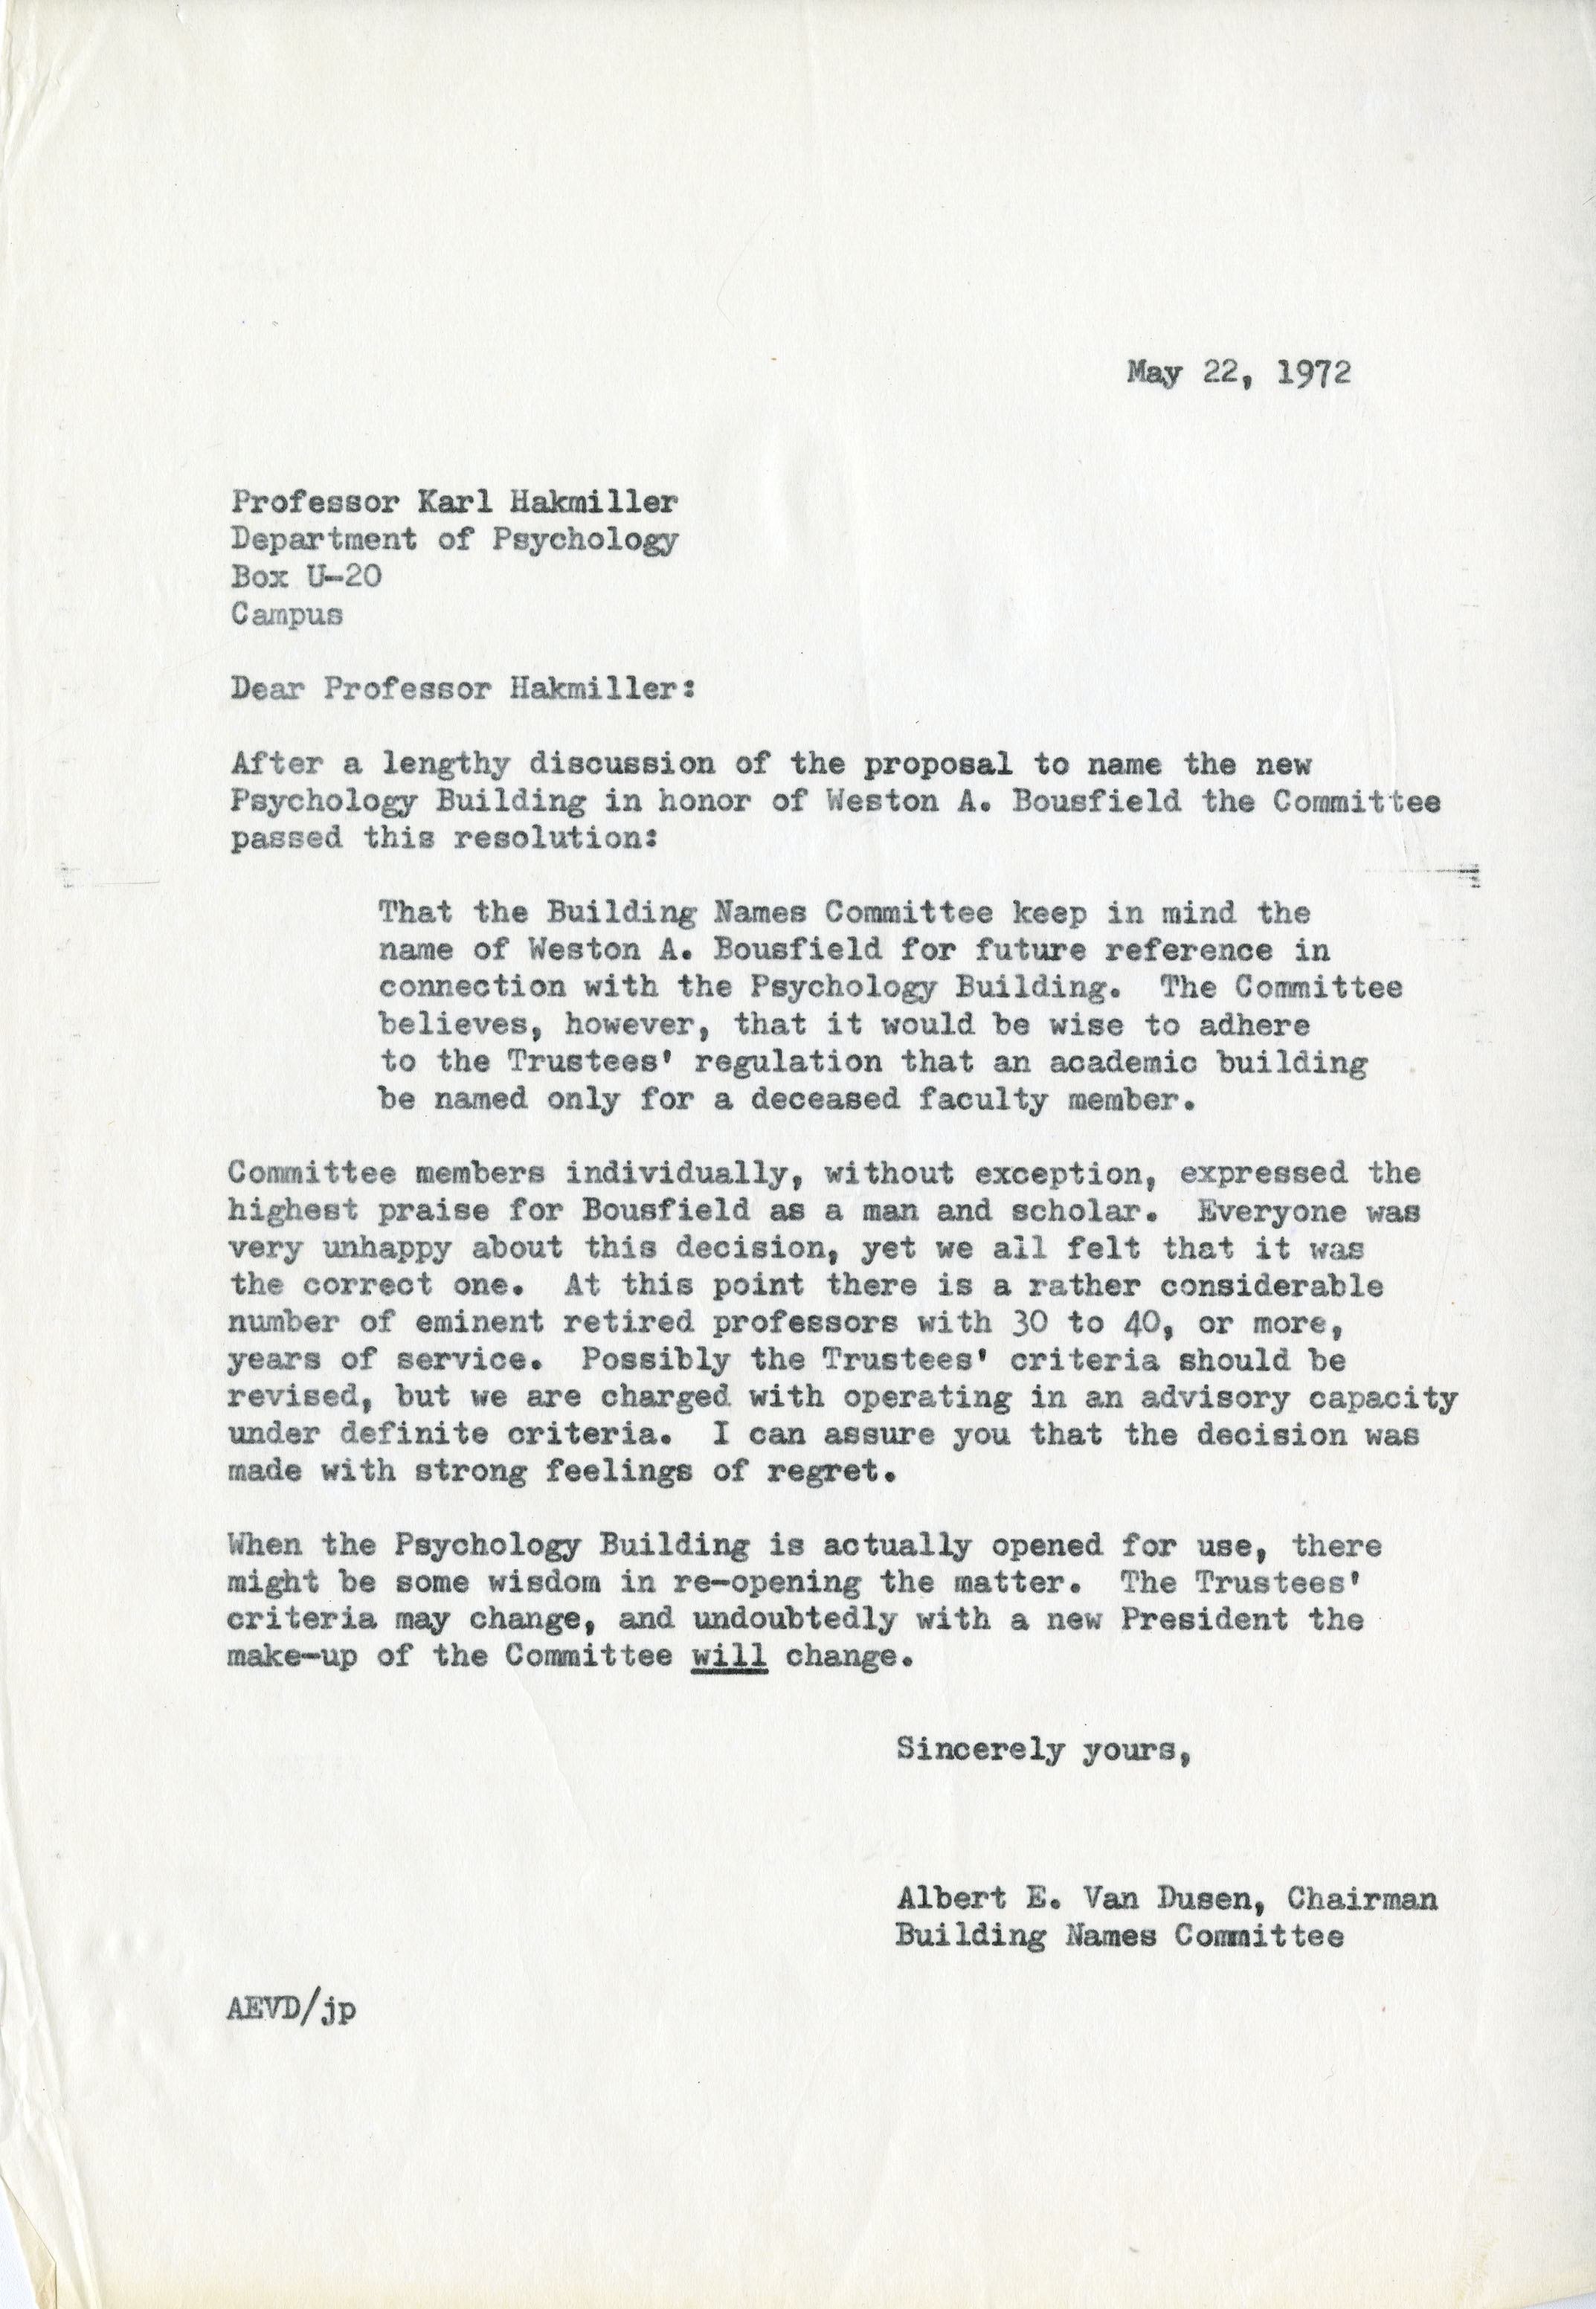 Letter from Building Names Committee about naming of the Psychology Building after Weston A. Bousfield, May 22, 1972